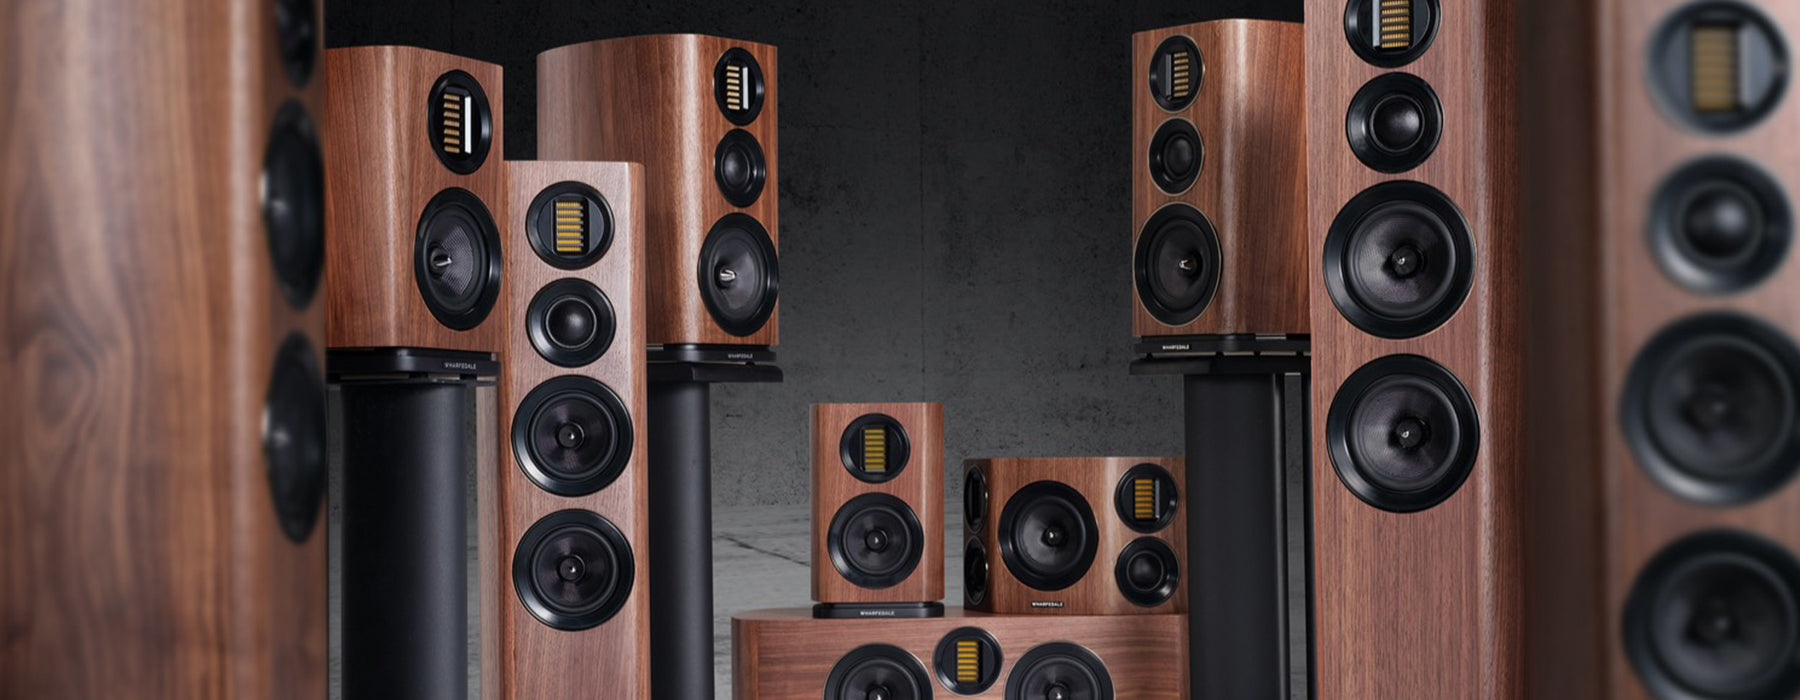 Wharfedale Speakers and Hi-Fi Equipment